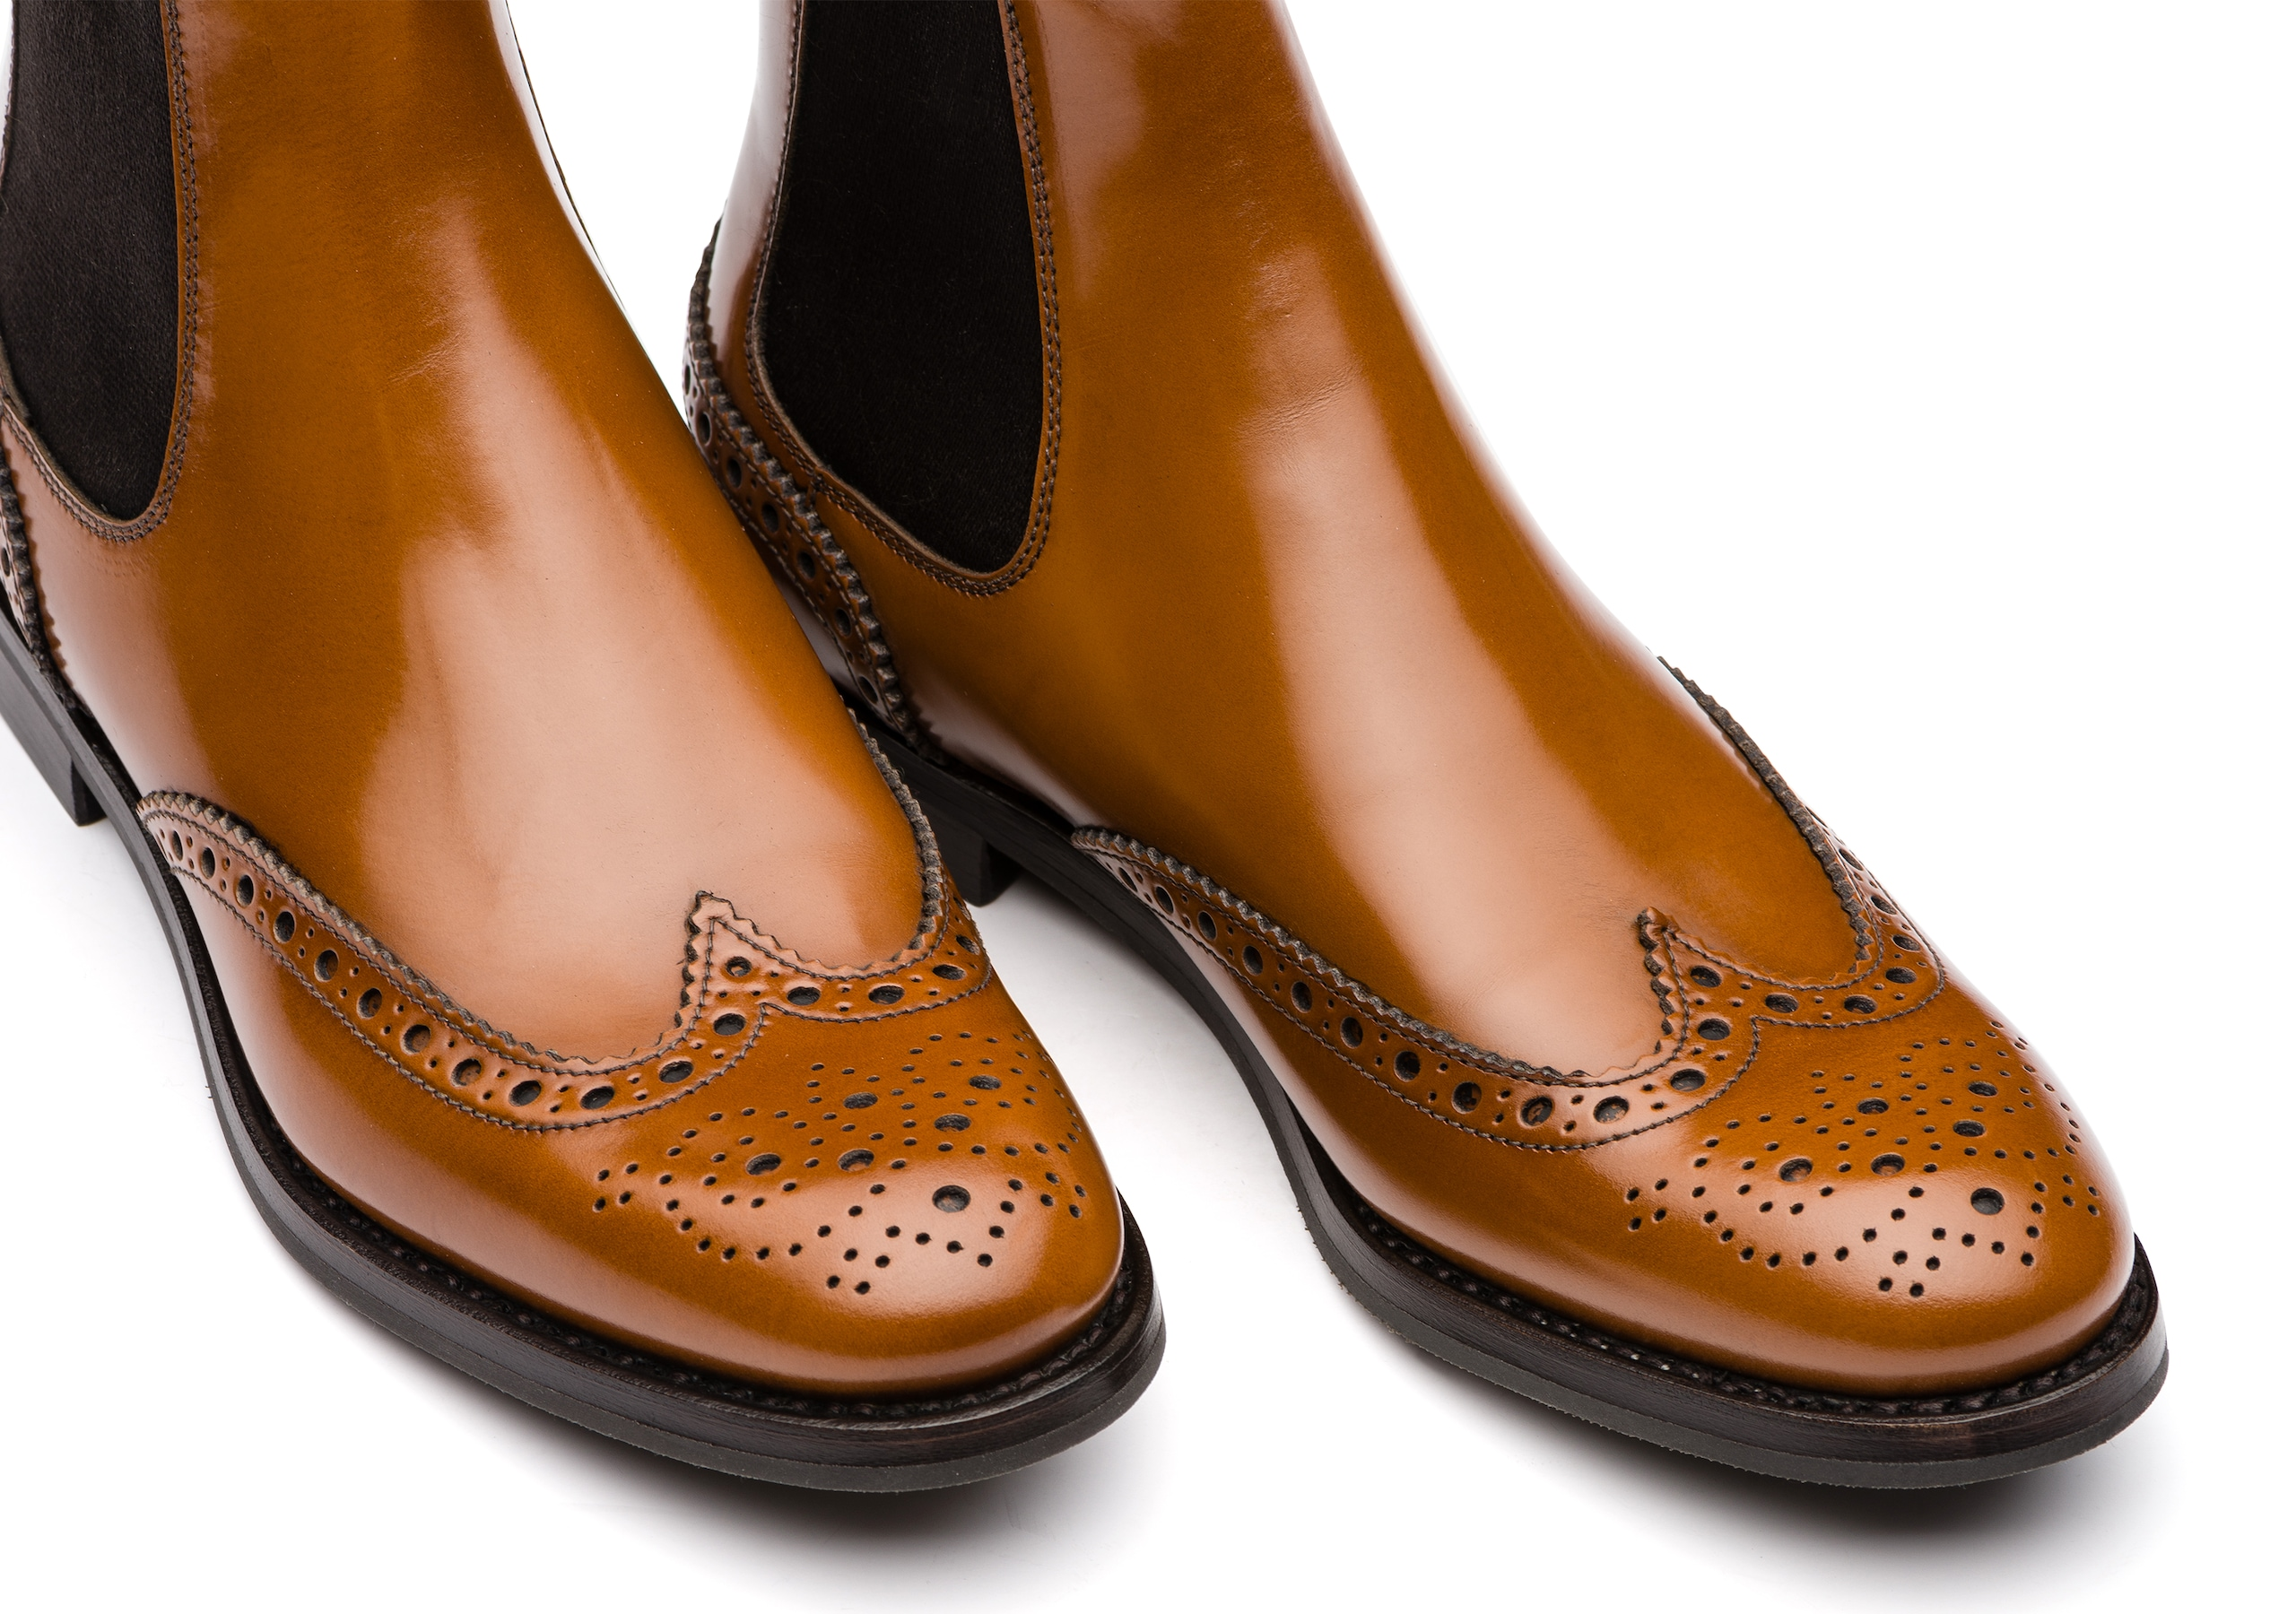 Ketsby wg Church's Polished Binder Brogue Chelsea Boot Brown